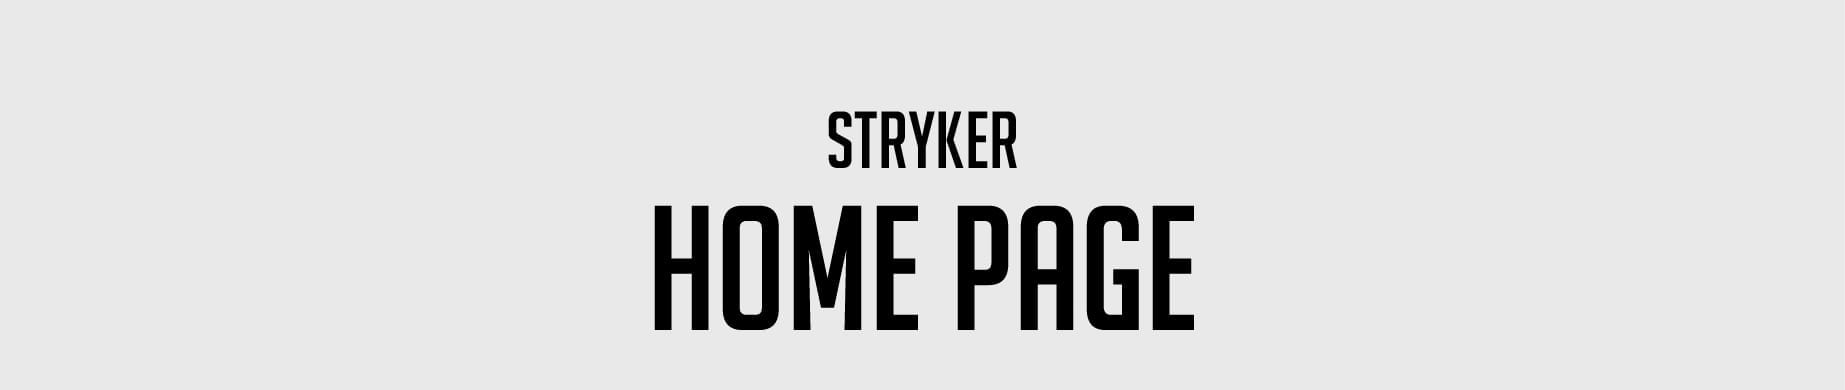 Stryker Home Page